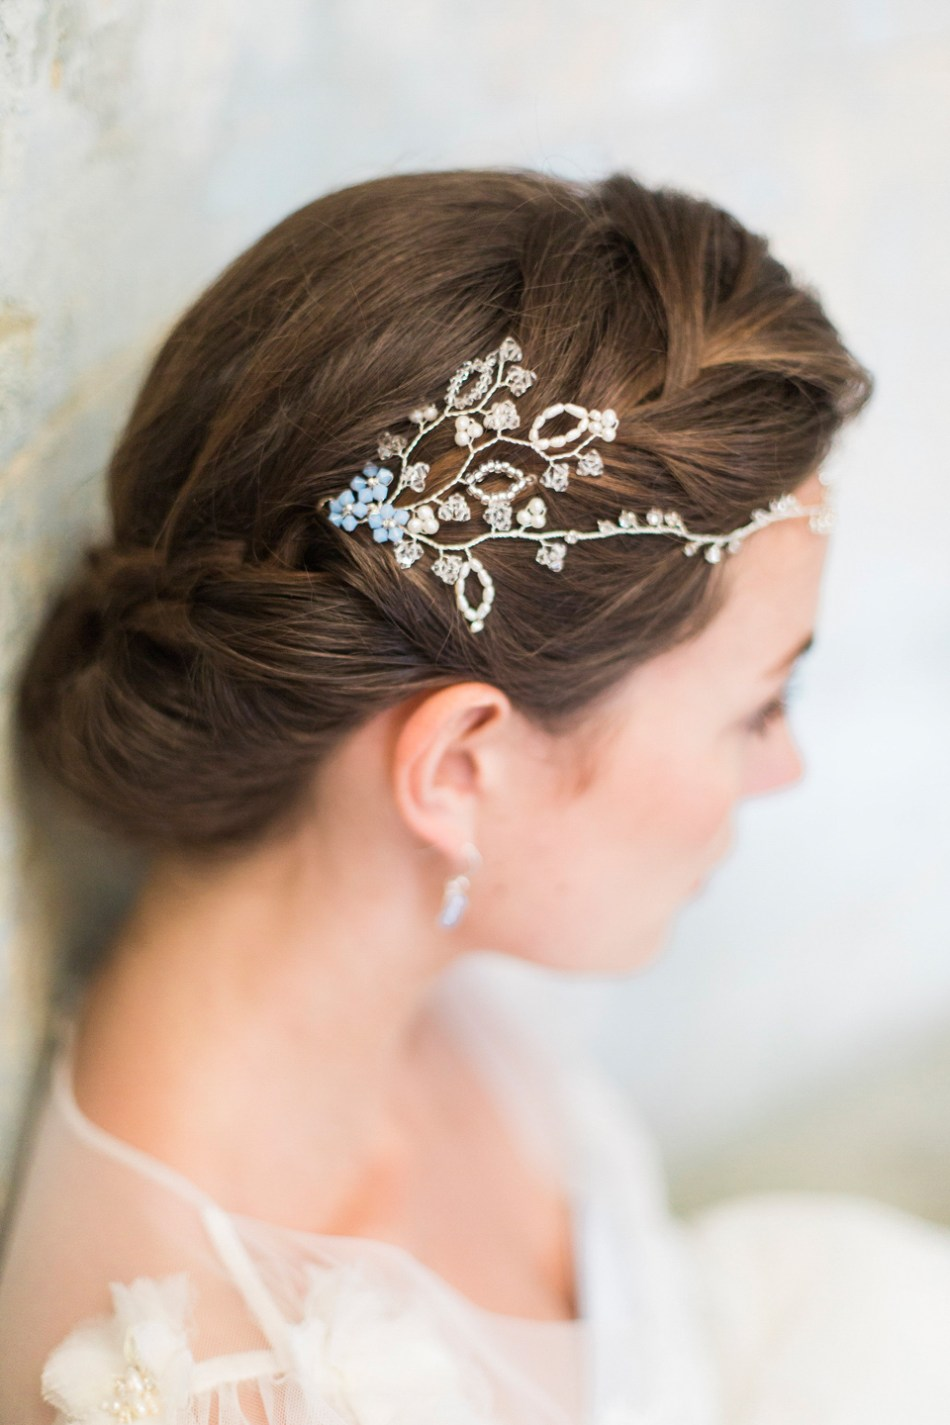 Hermione Harbut Dreamy Ethereal And Delicate Headpieces